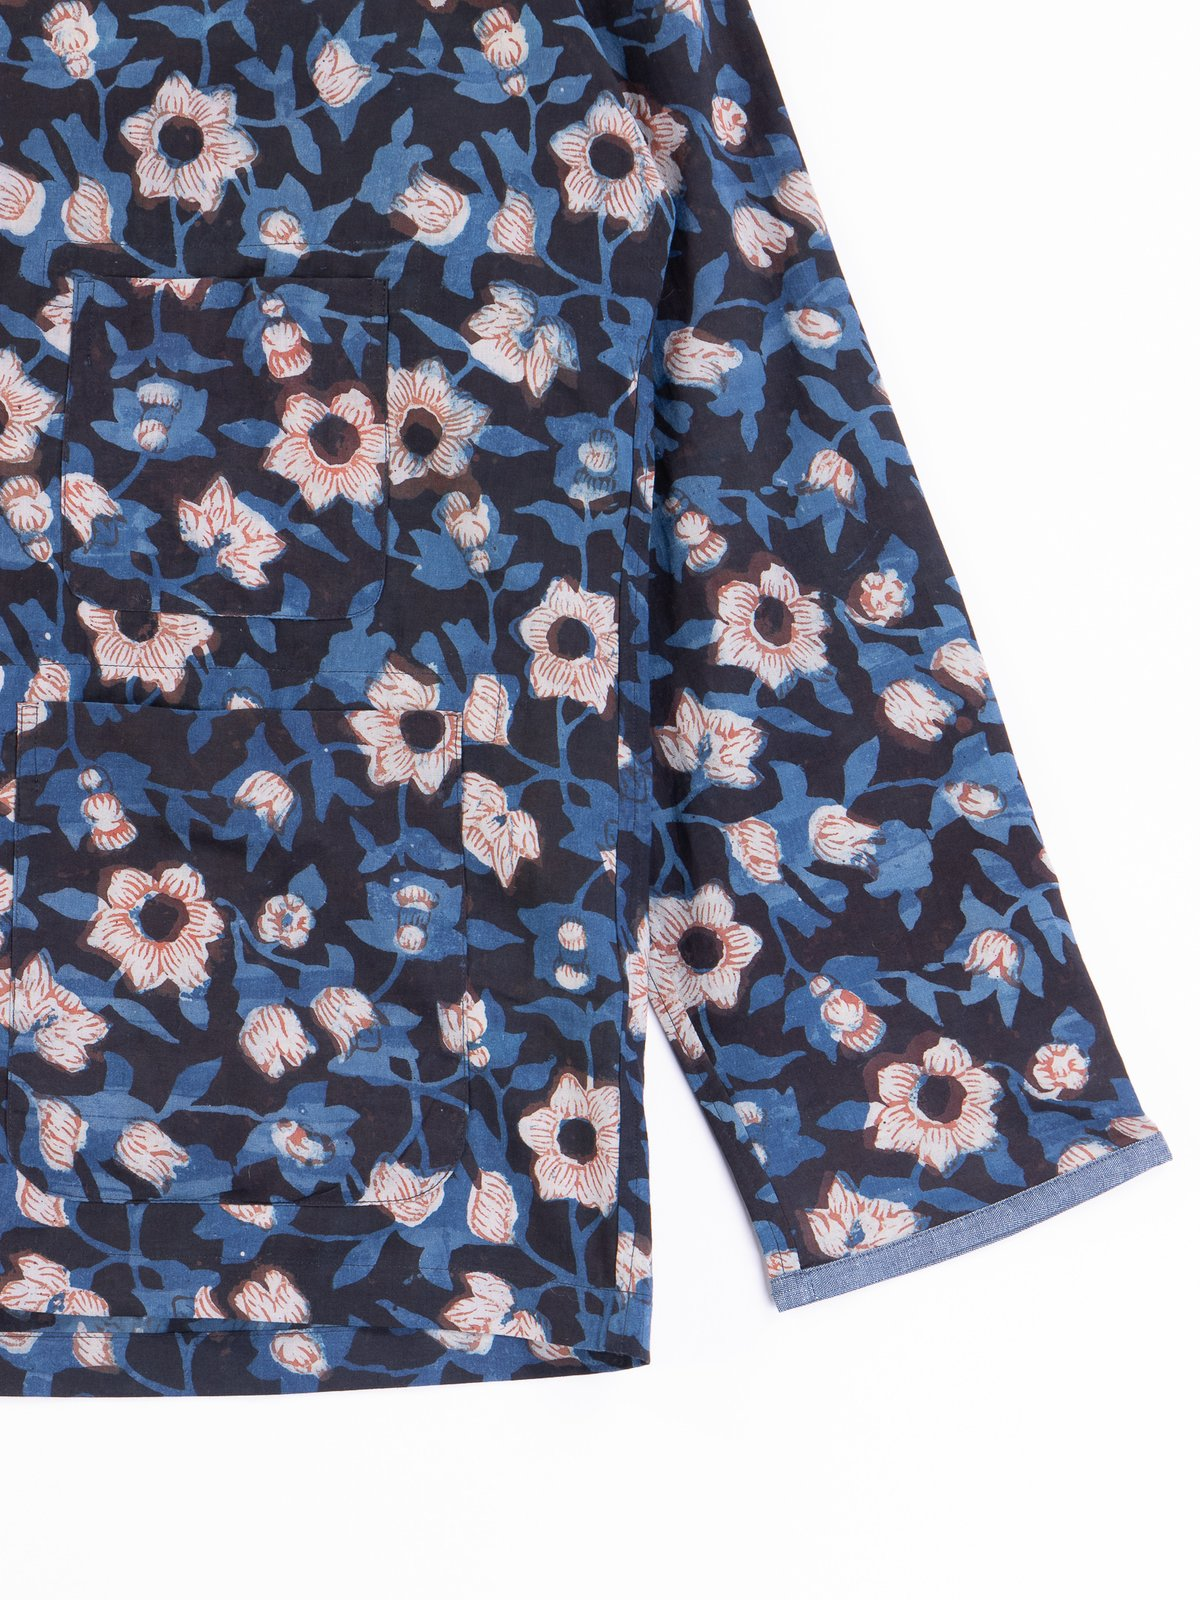 Indigo Flower Indian Print EZ–JACIII Jacket - Image 3